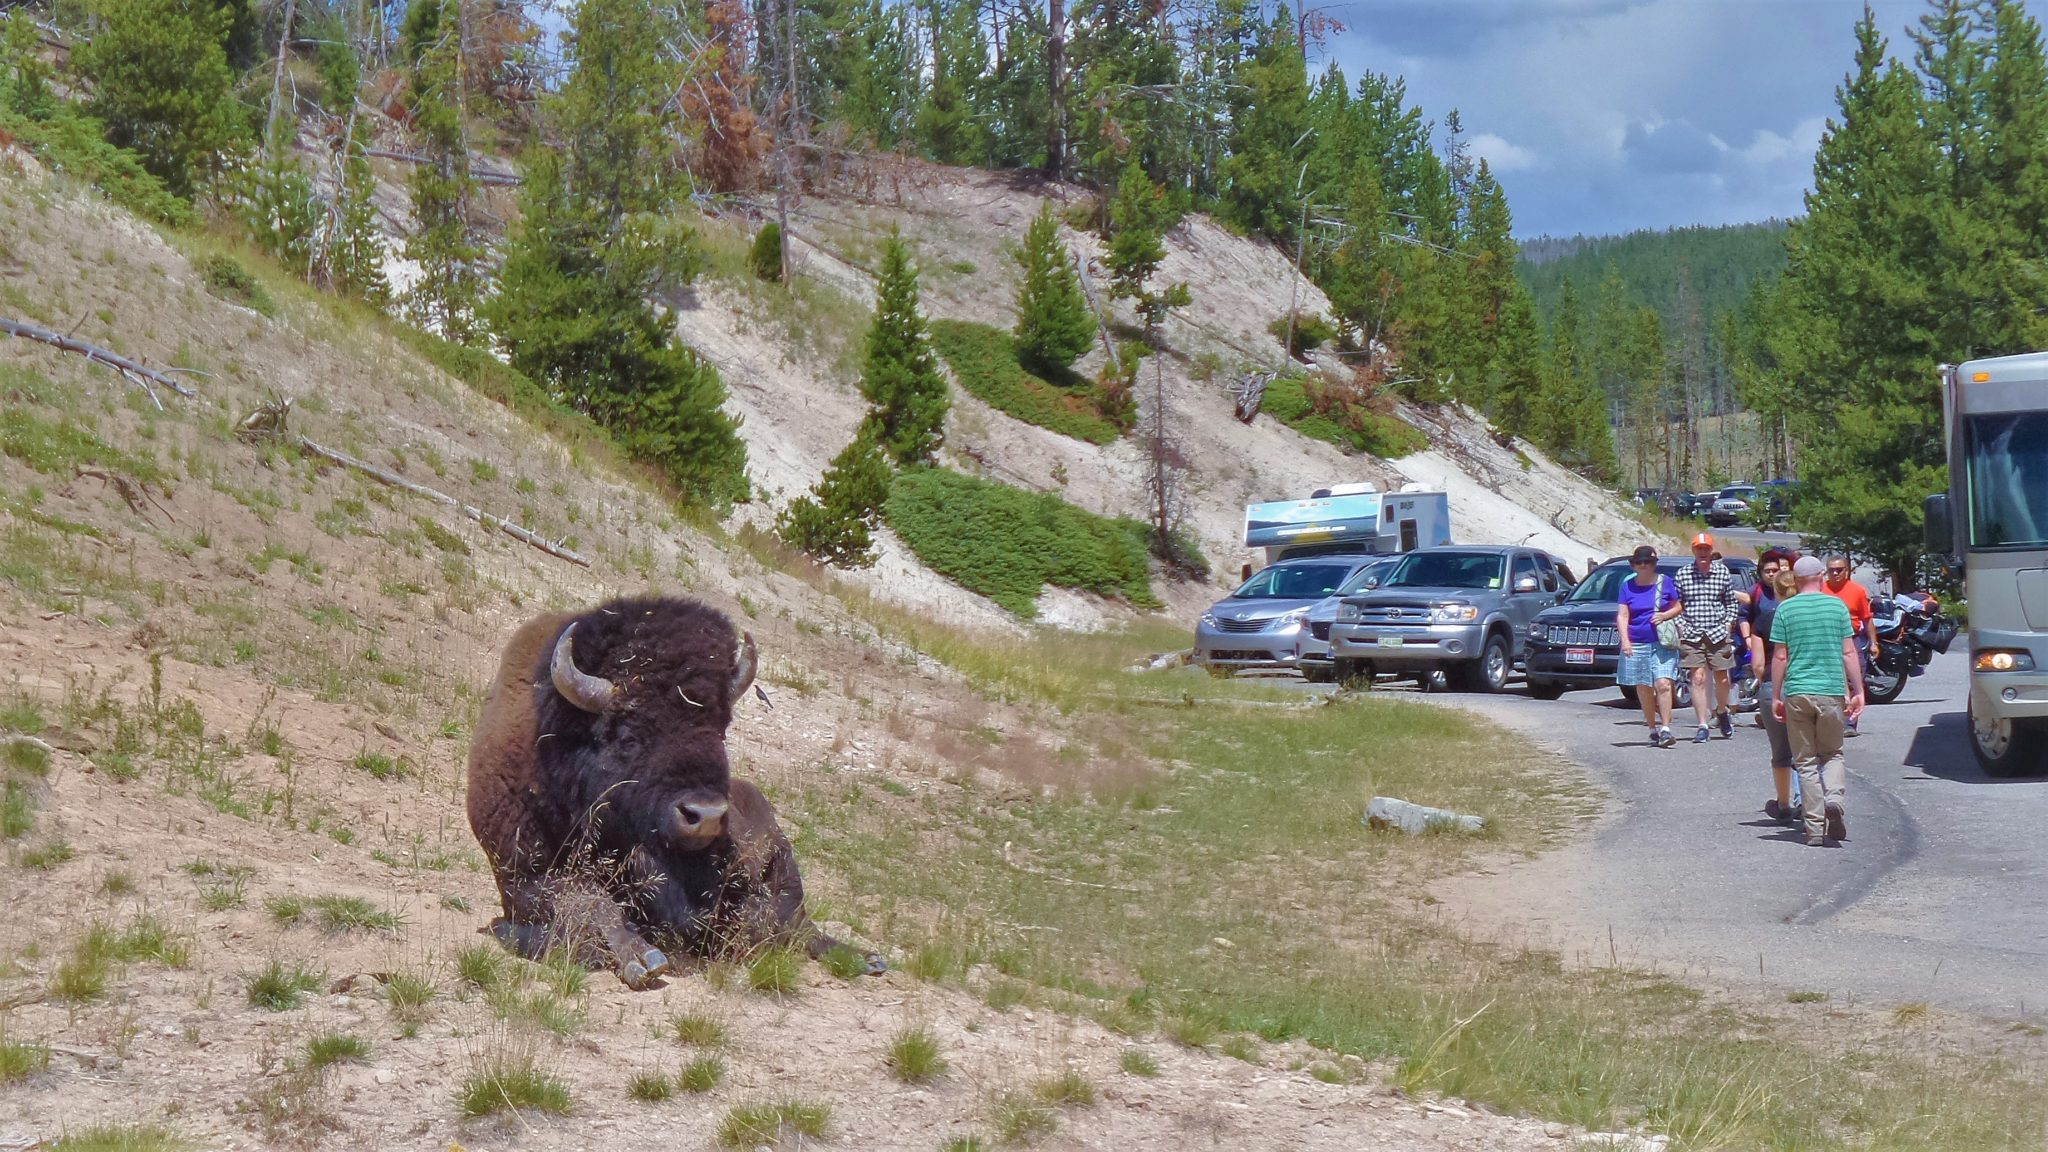 Sleeping Bison, Yellowstone National Park car park USA